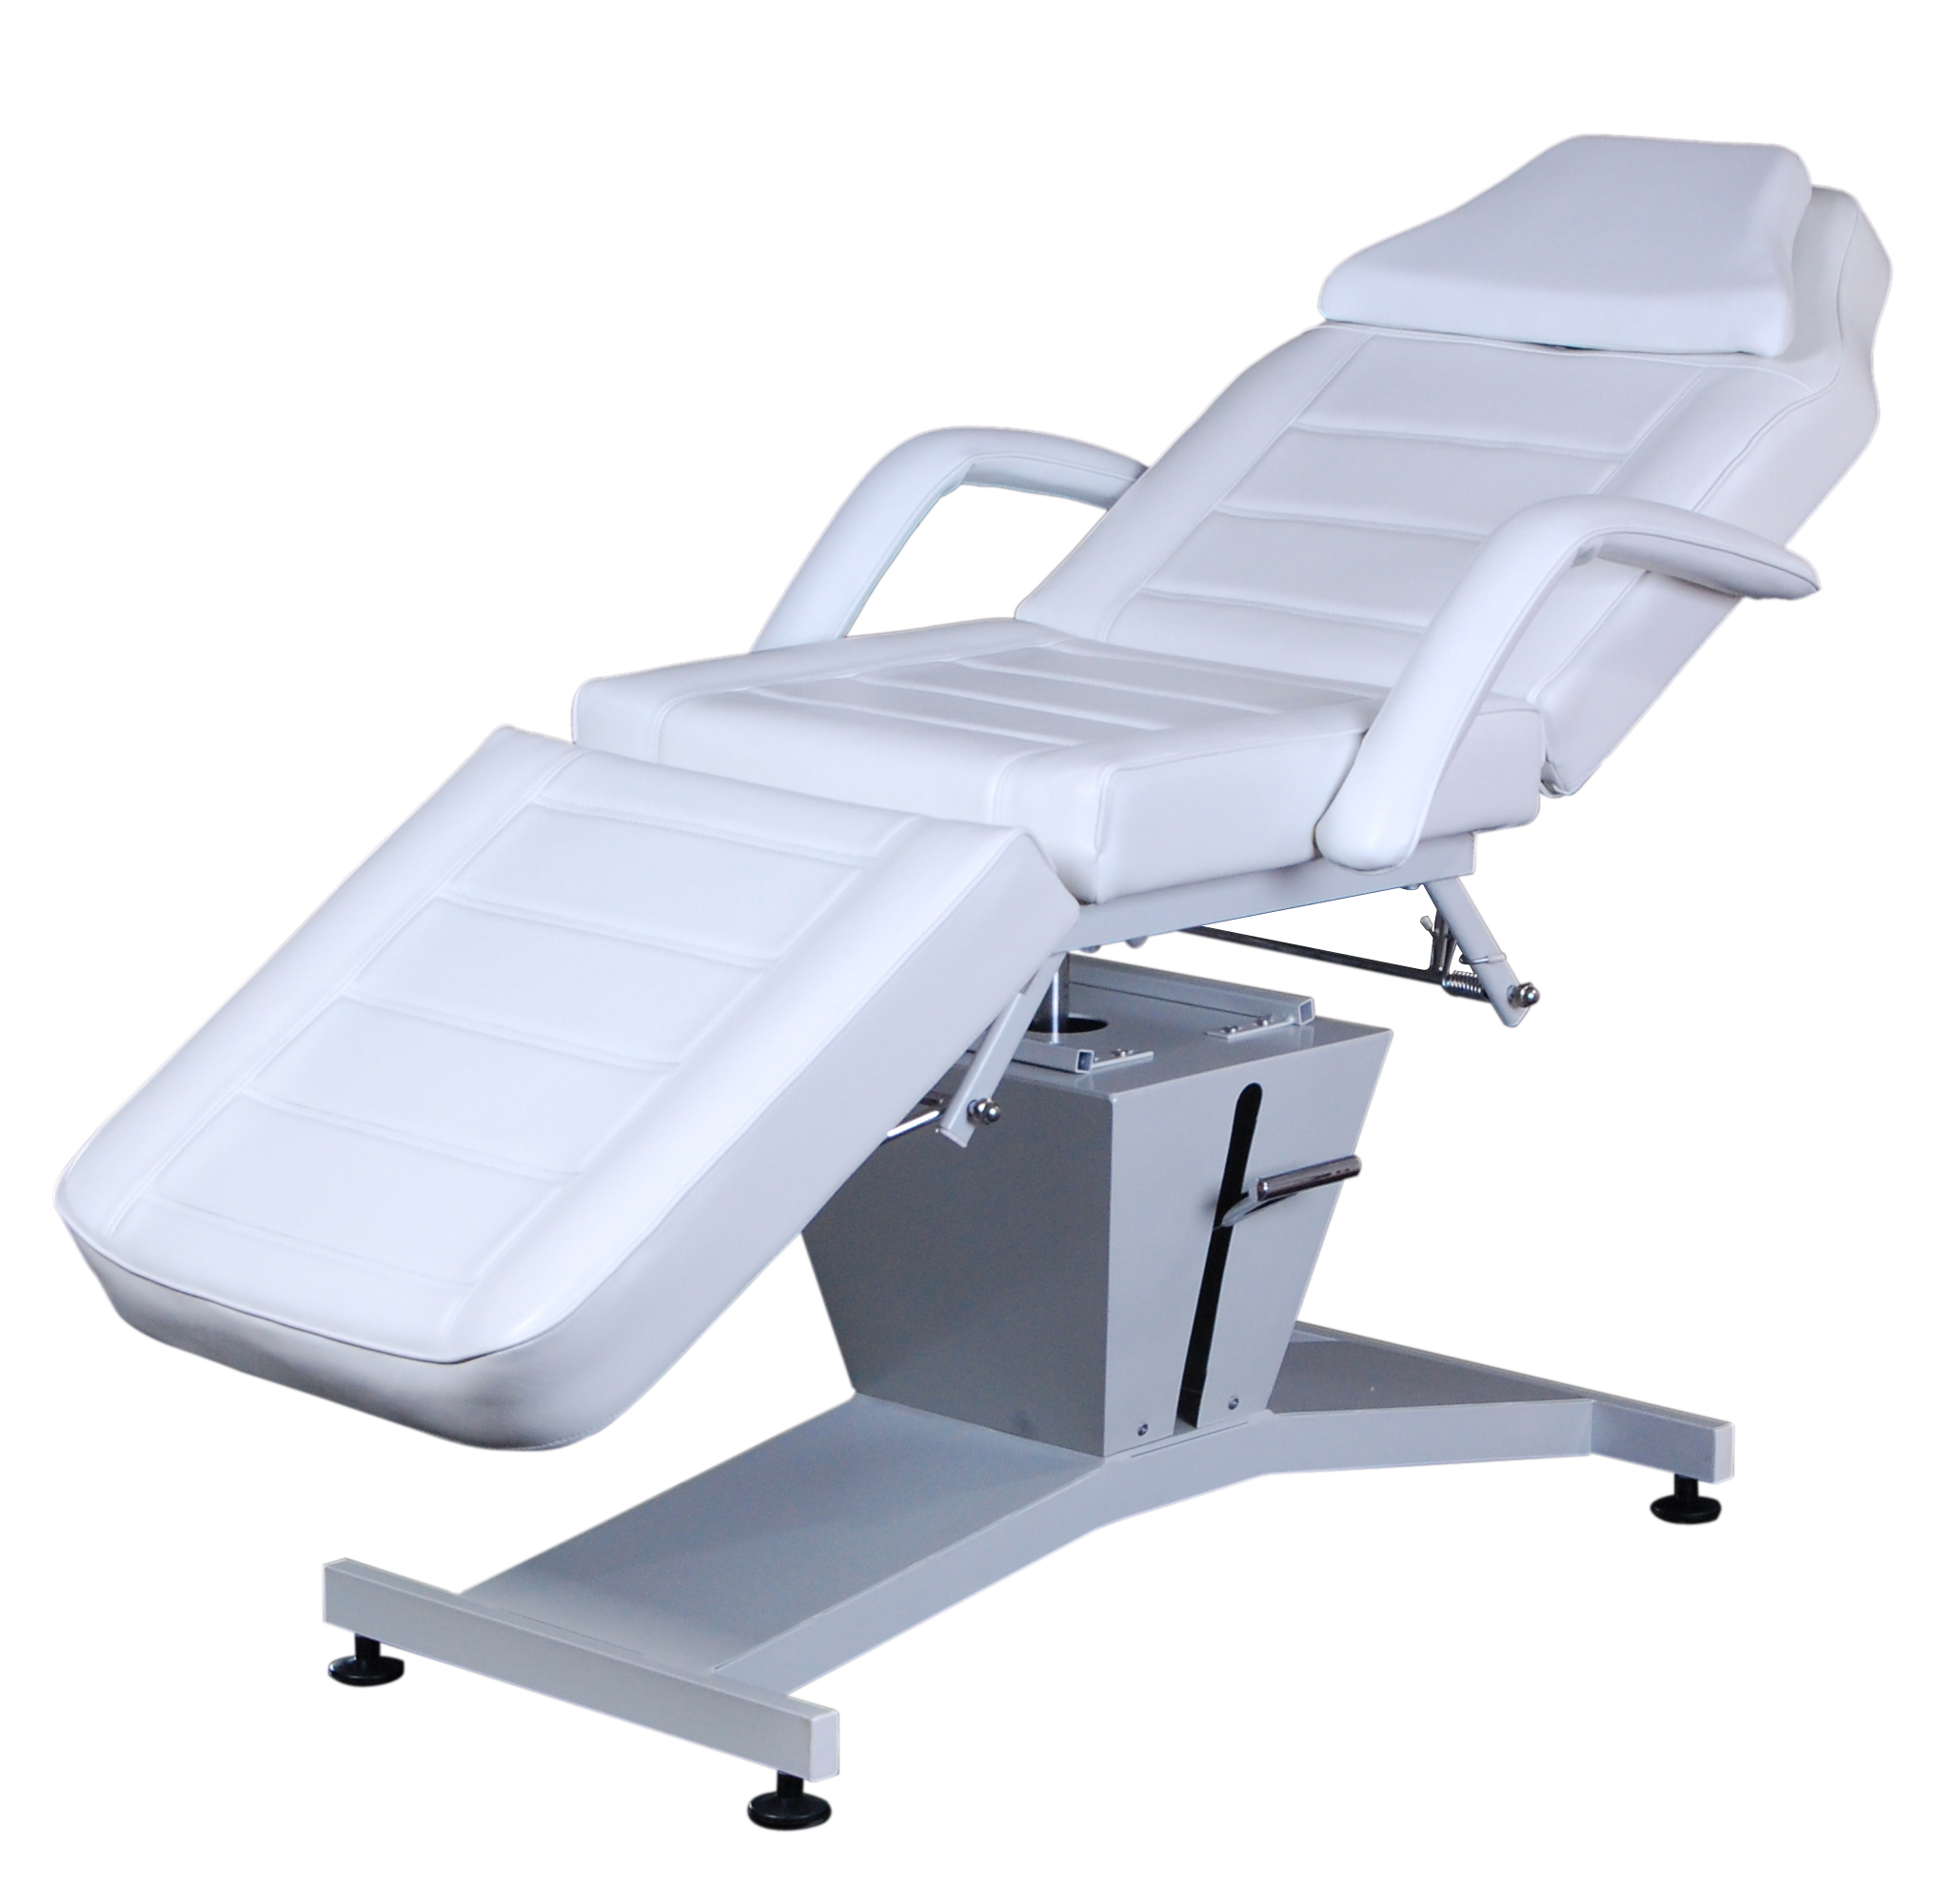 massage chair bed covers home depot elite hydraulic pro aesthetic spa salon